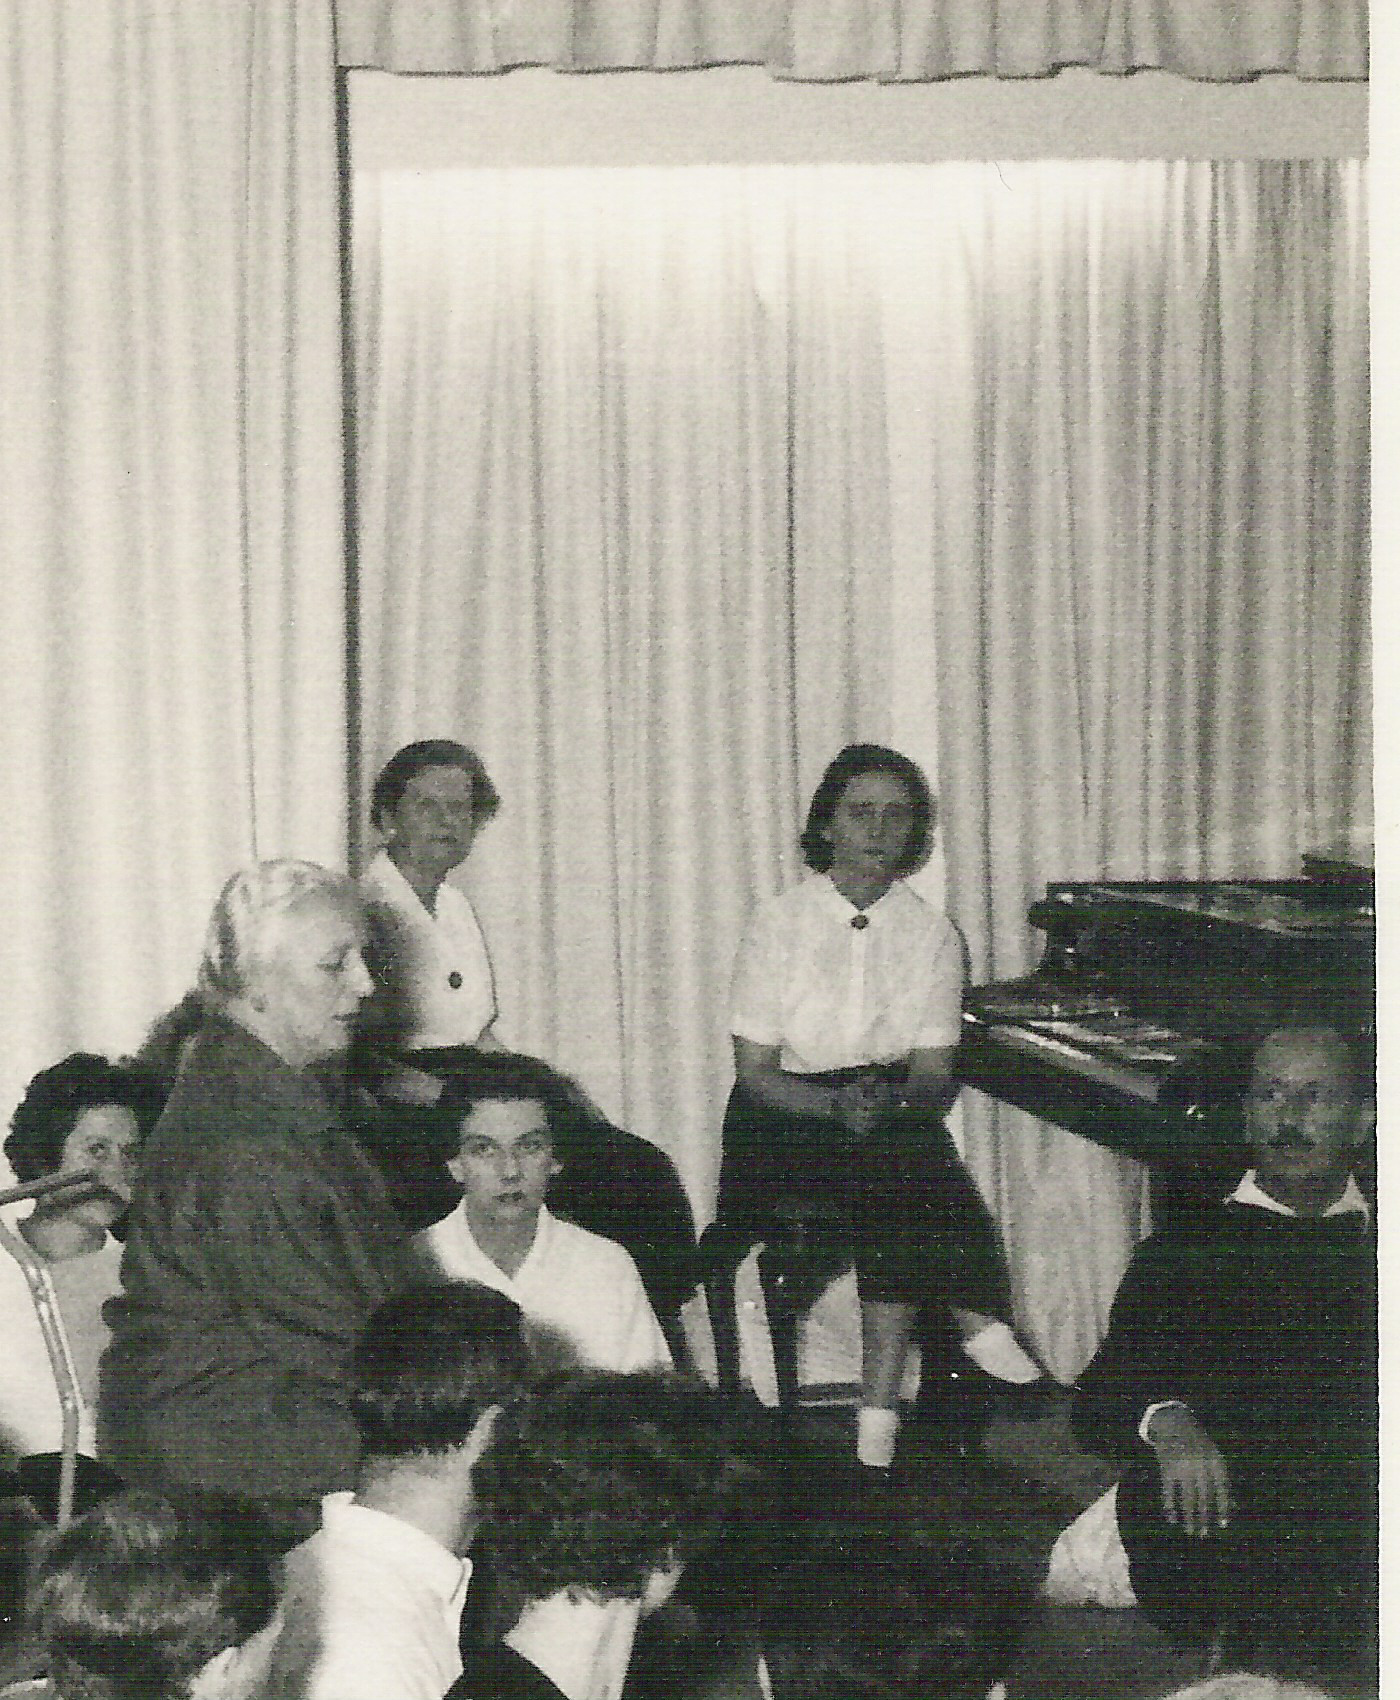 photo: Jeanne de Salzmann sitting left with Helen Adie at the piano, London  to enlarge click on image